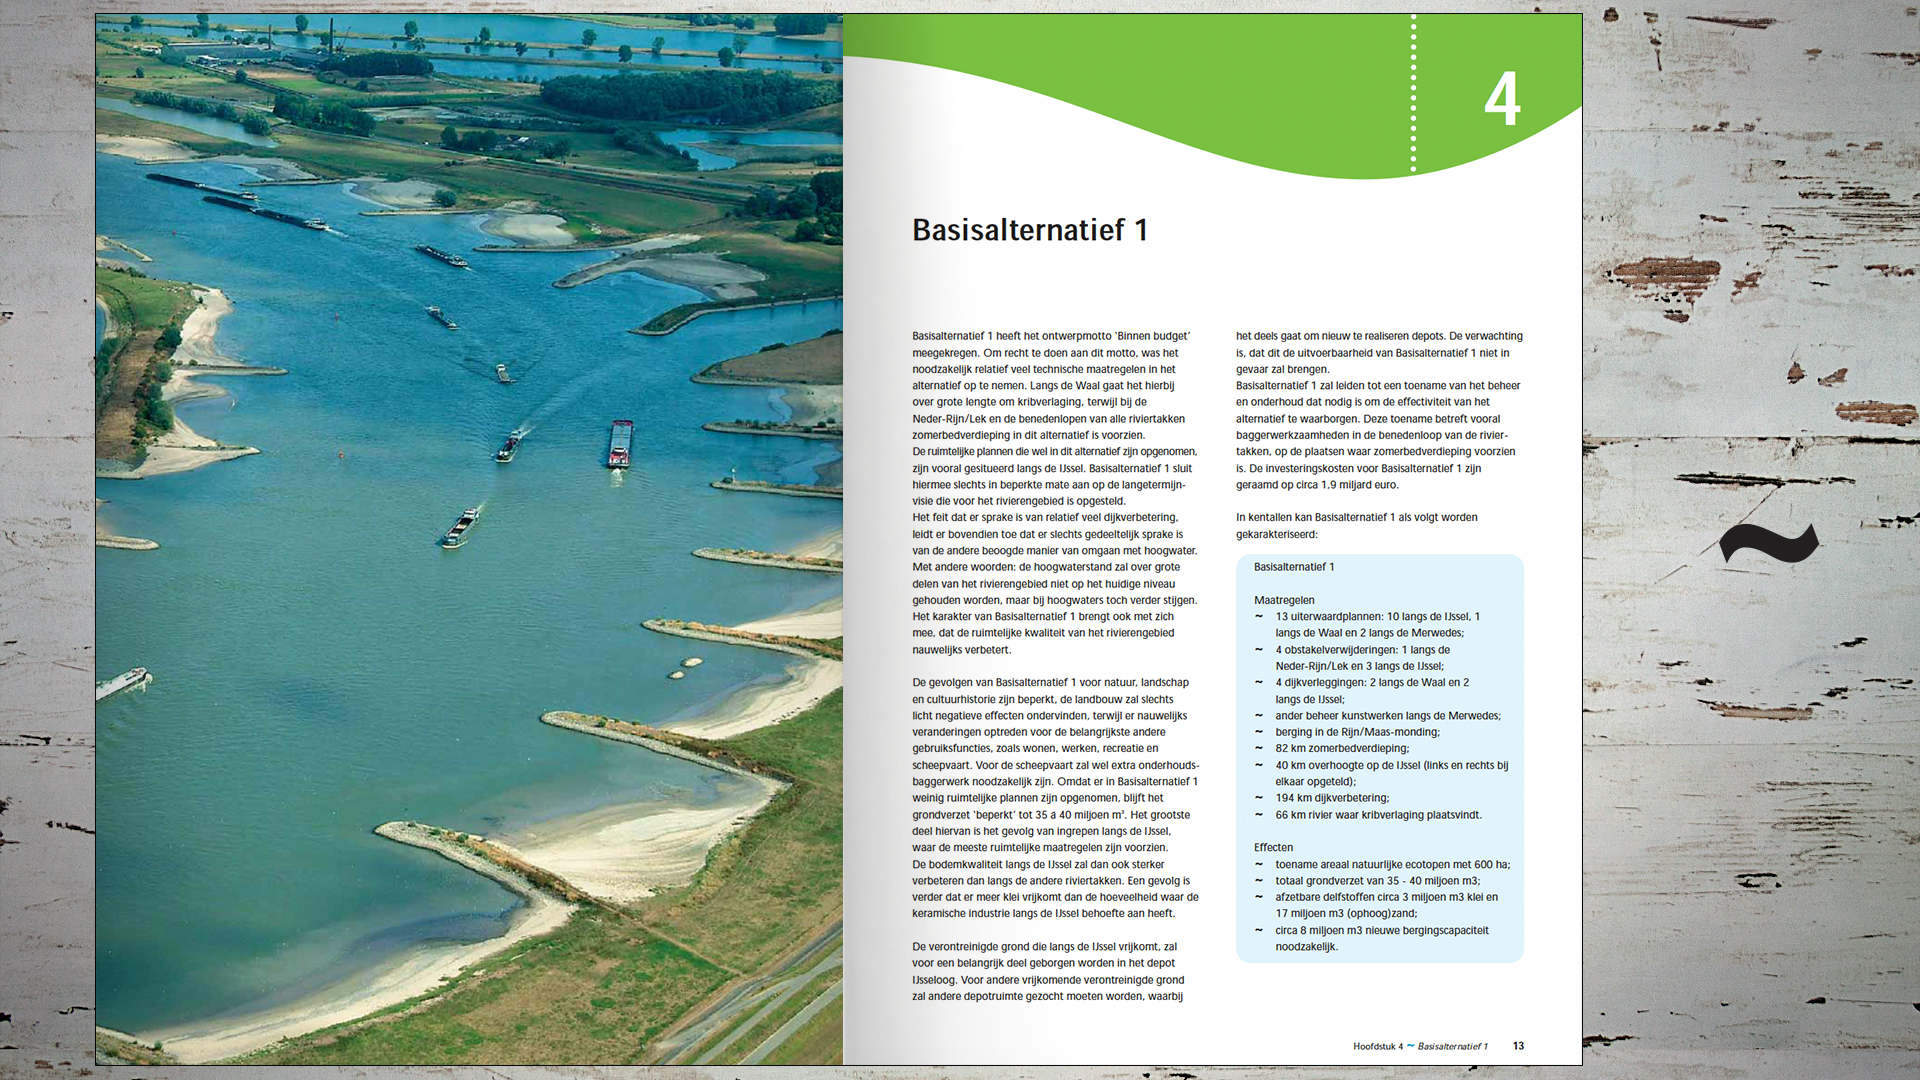 Rijkswaterstaat. Case. Visuals art direction, design, creative consultancy. Sham Ramessar